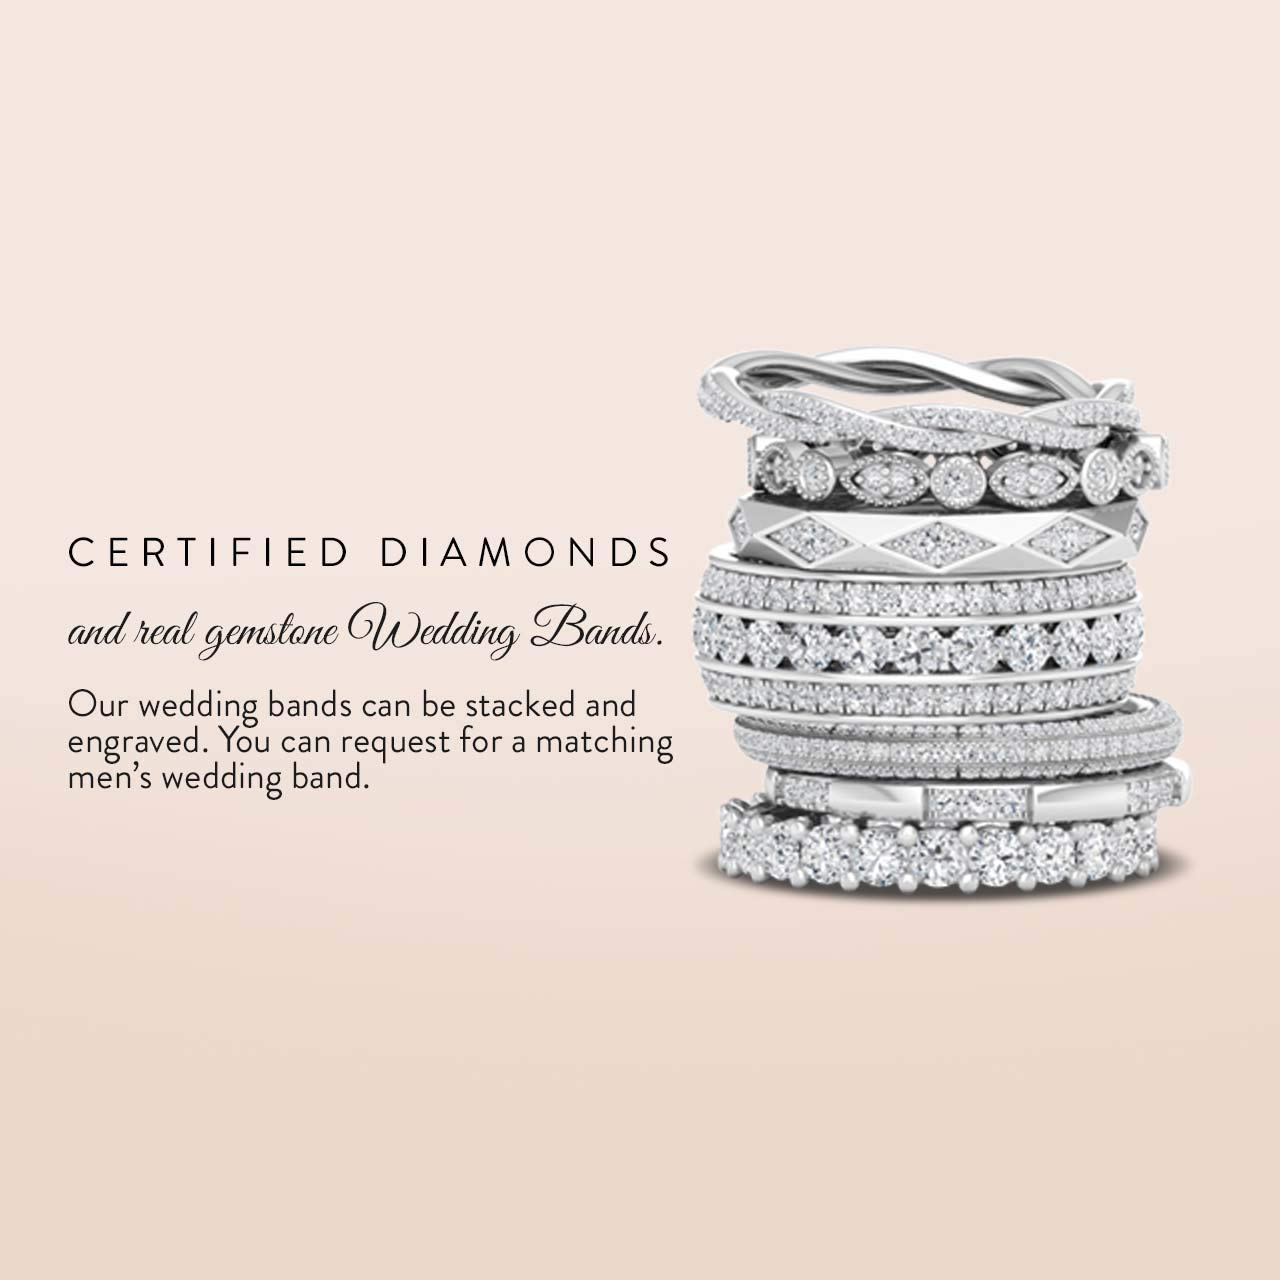 Diamondere Natural and Certified Diamond Wedding Ring in 14K White Gold | 0.79 Carat Full Eternity Stackable Band for Women, US Size 5.5 by Diamondere (Image #6)